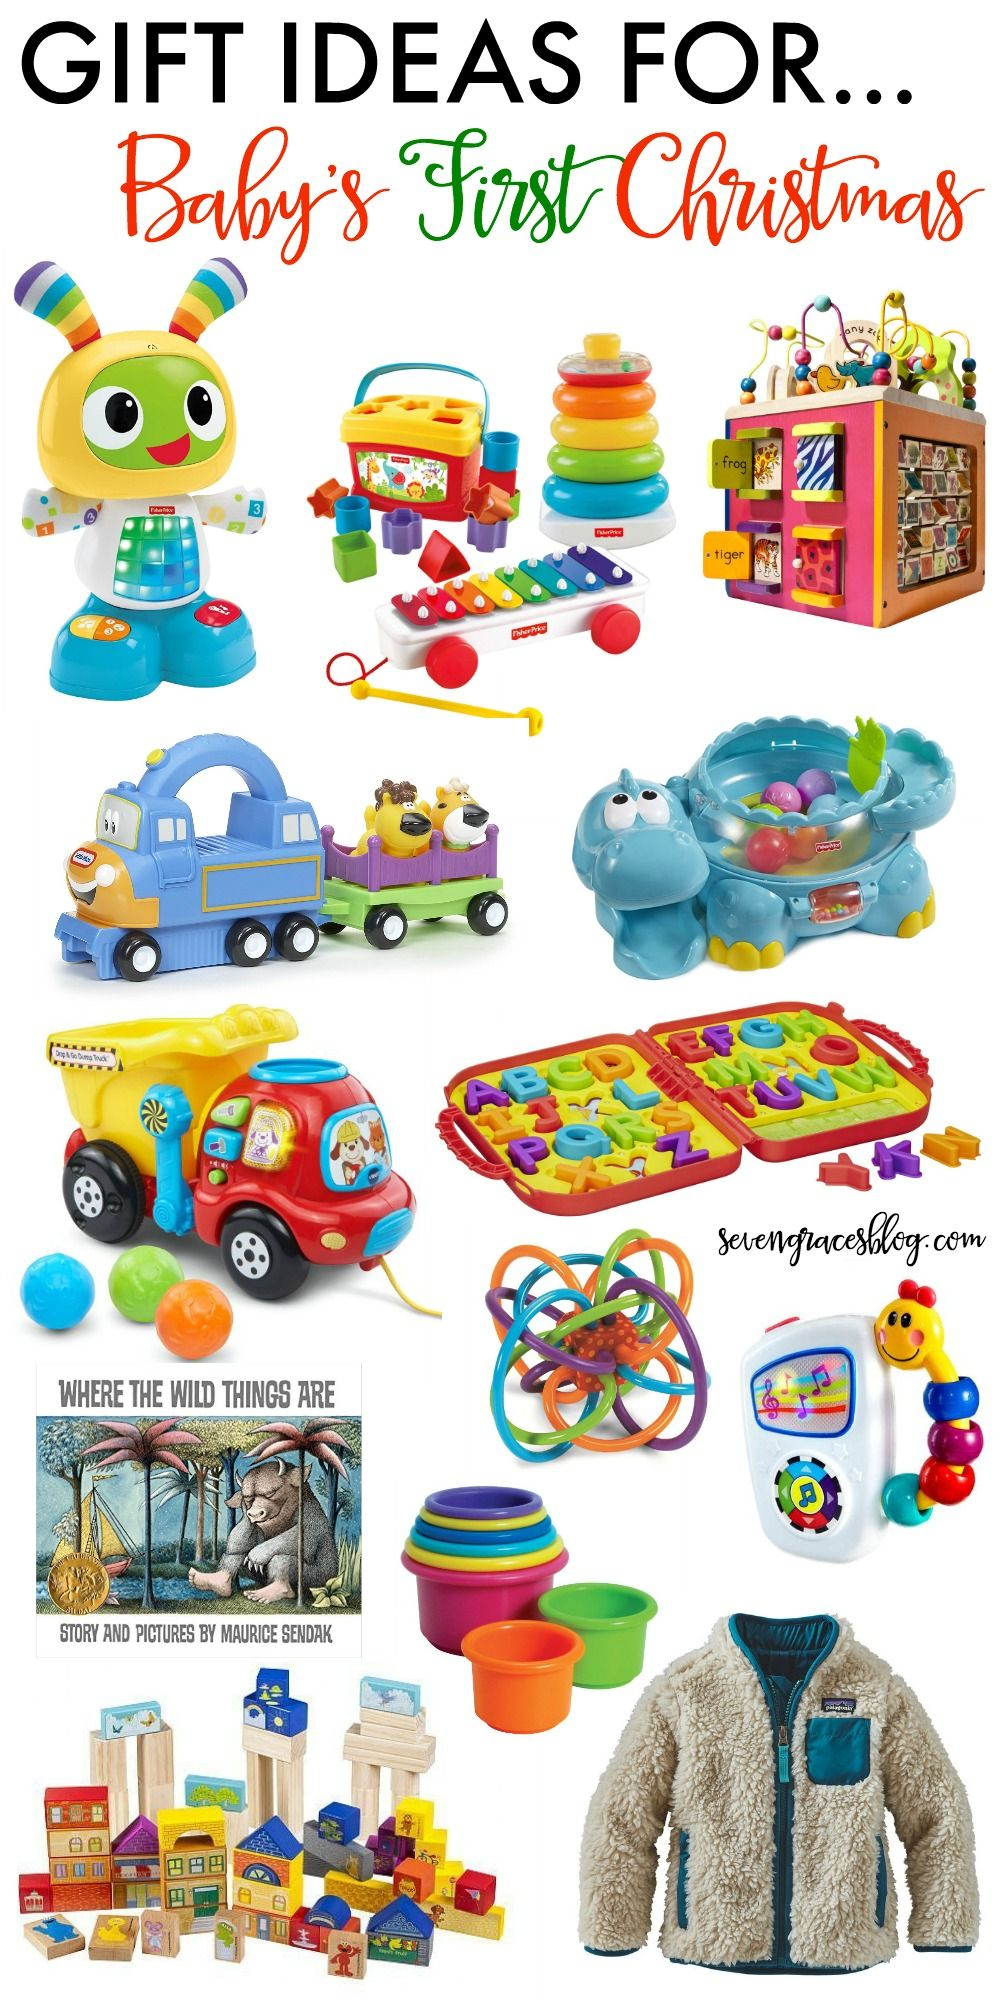 004c9e517c38a The best baby toys and gift ideas for baby s first Christmas. These gifts  will grow with baby well into the toddler years. Great picks for boys and  girls!